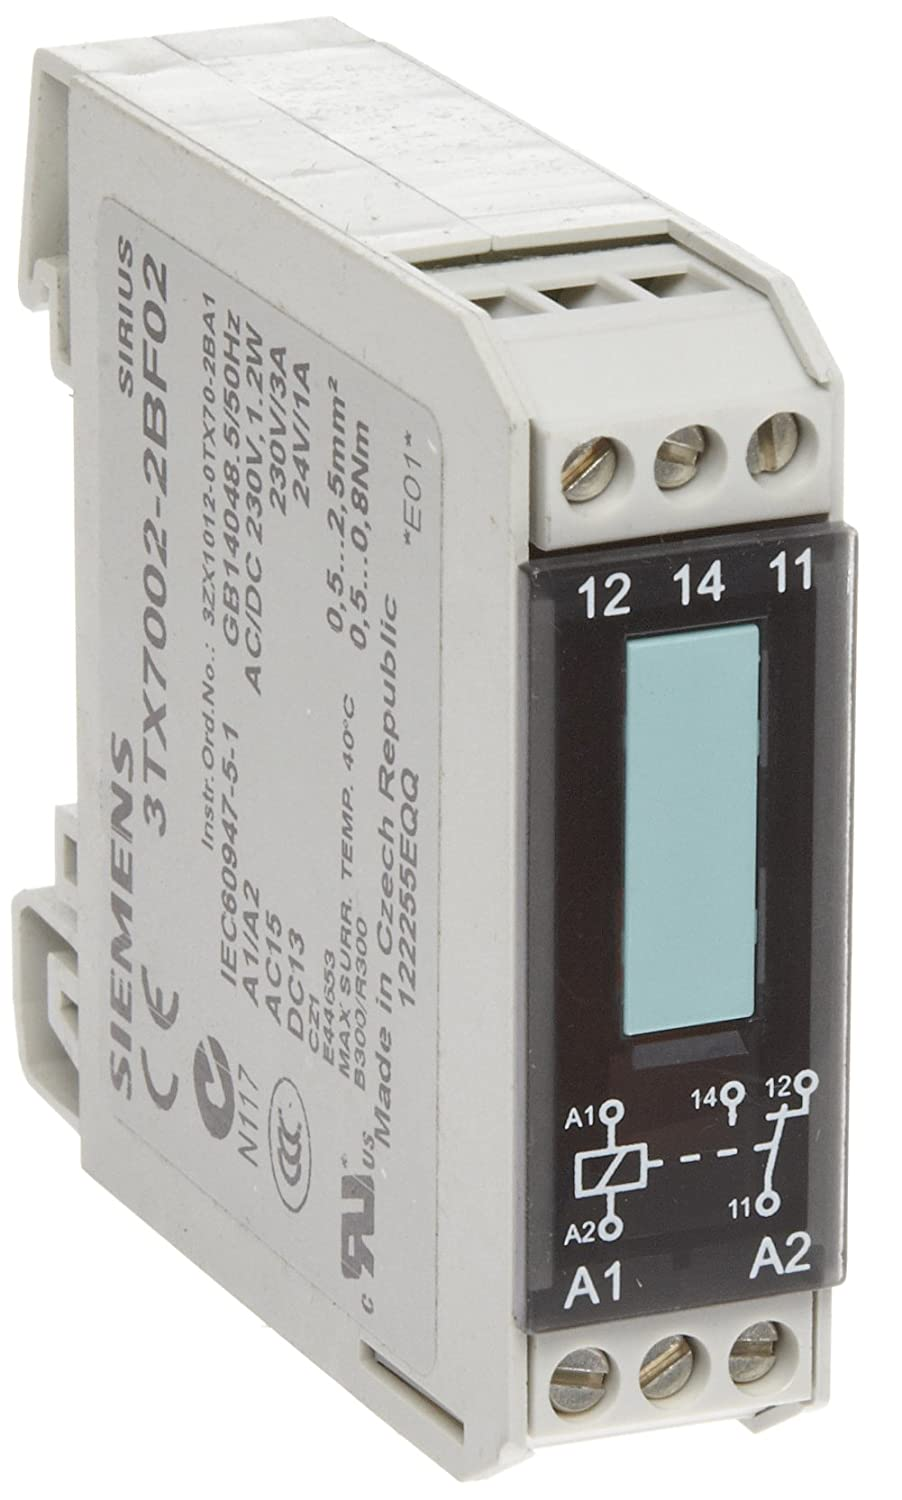 Switching Current In Relay Siemens 3tx7002 3ab00 Interface Narrow Design Output Coupler With Semiconductor 1 No Contact 125mm Width 24vdc Control Supply Voltage 18a Max